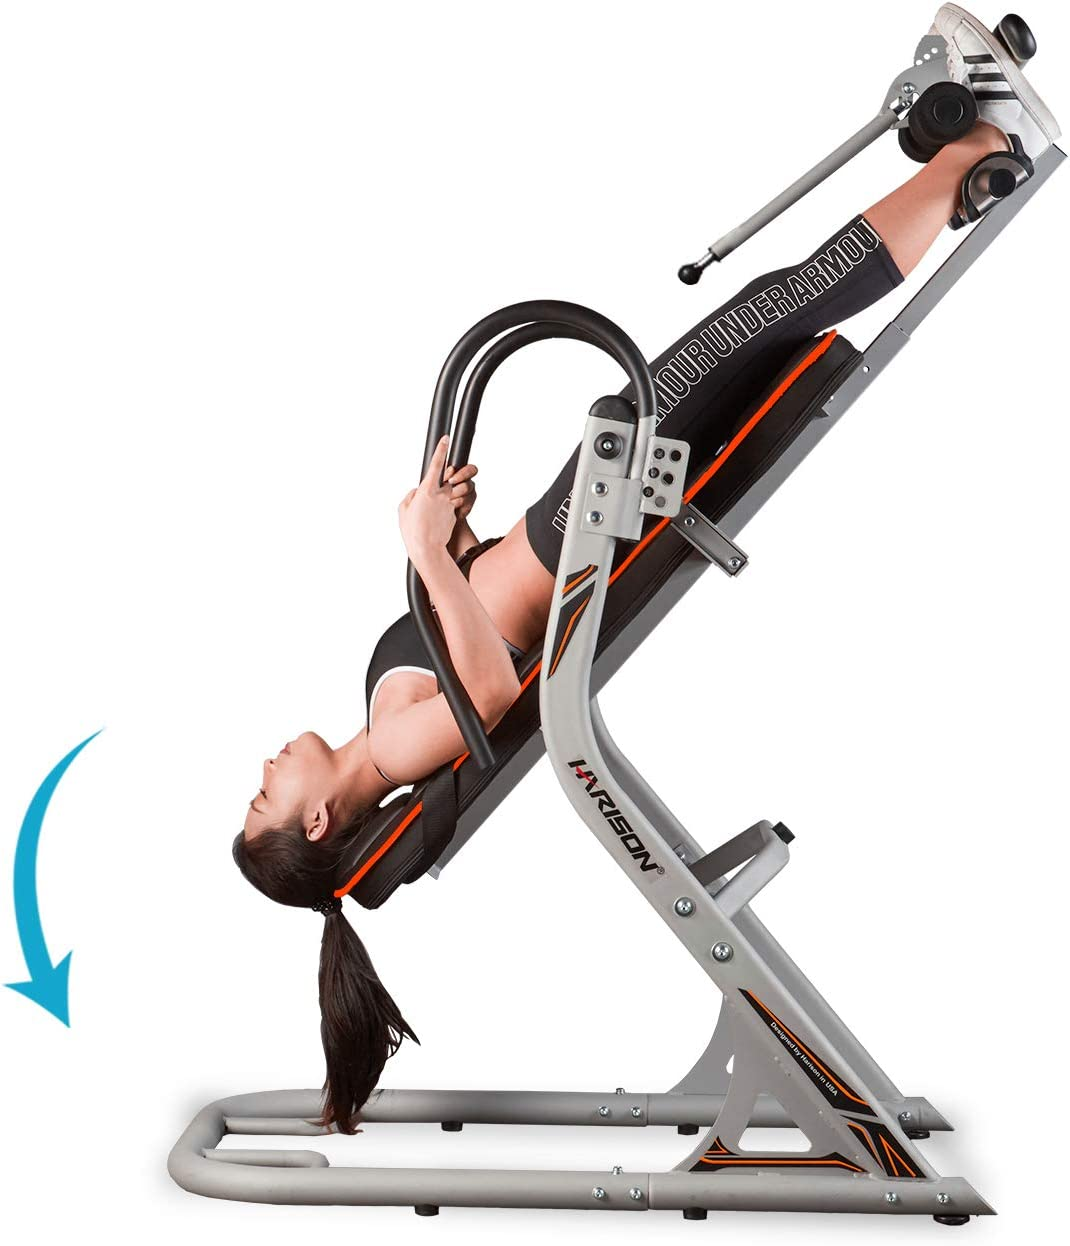 HARISON Inversion Table for Back Pain Relief with 3D Memory Foam